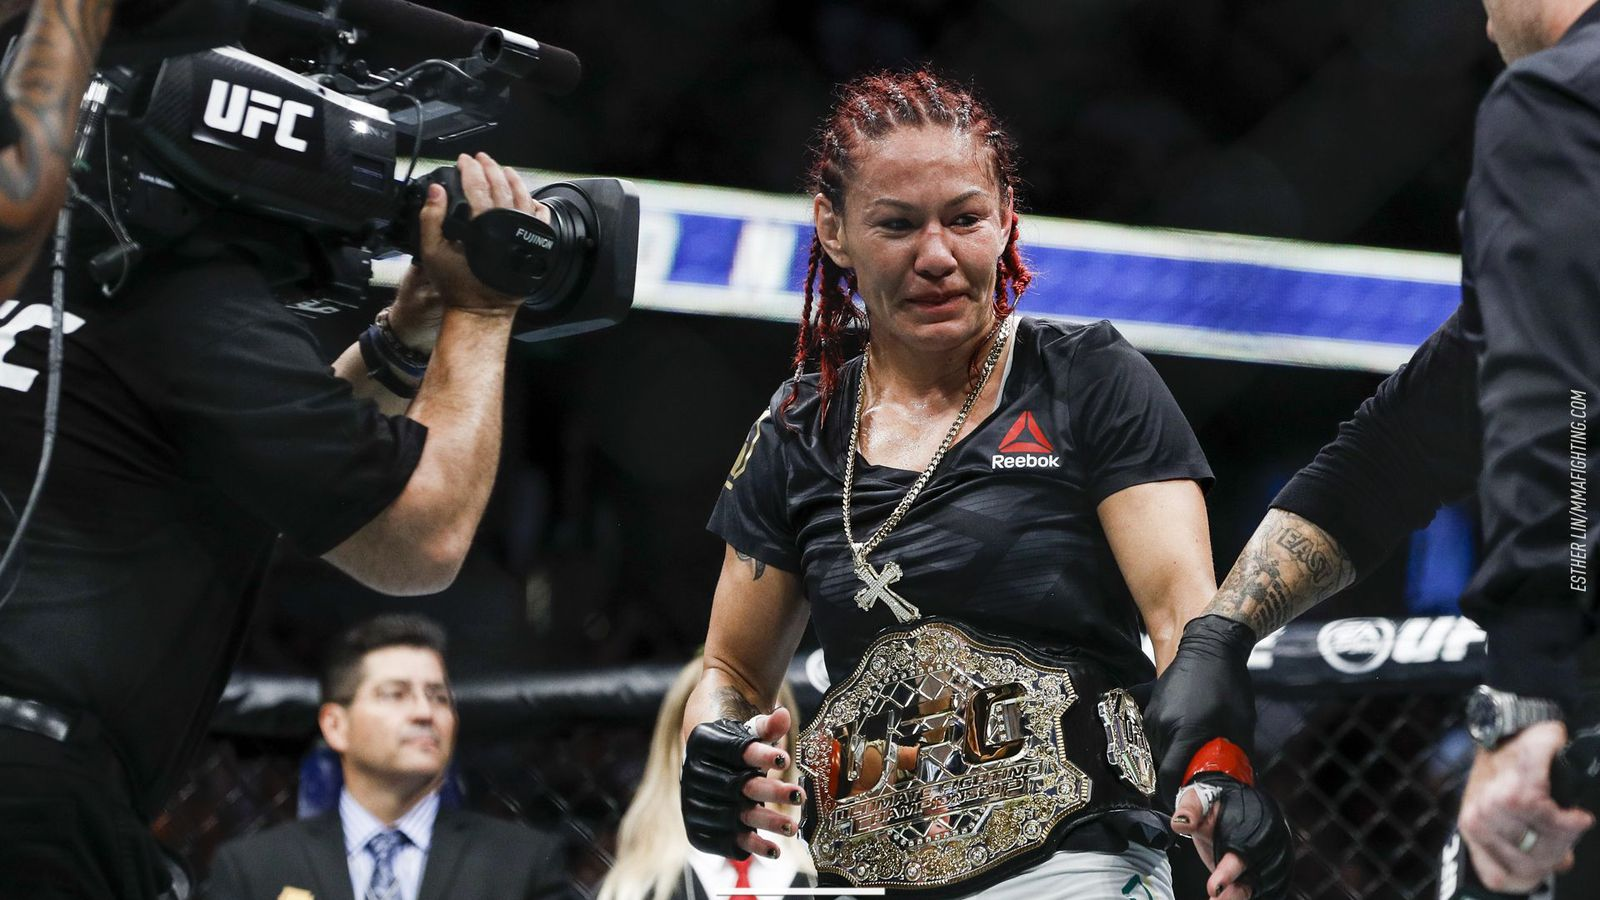 Cris Cyborg calls out Holly Holm for UFC 219 title bout in Las Vegas